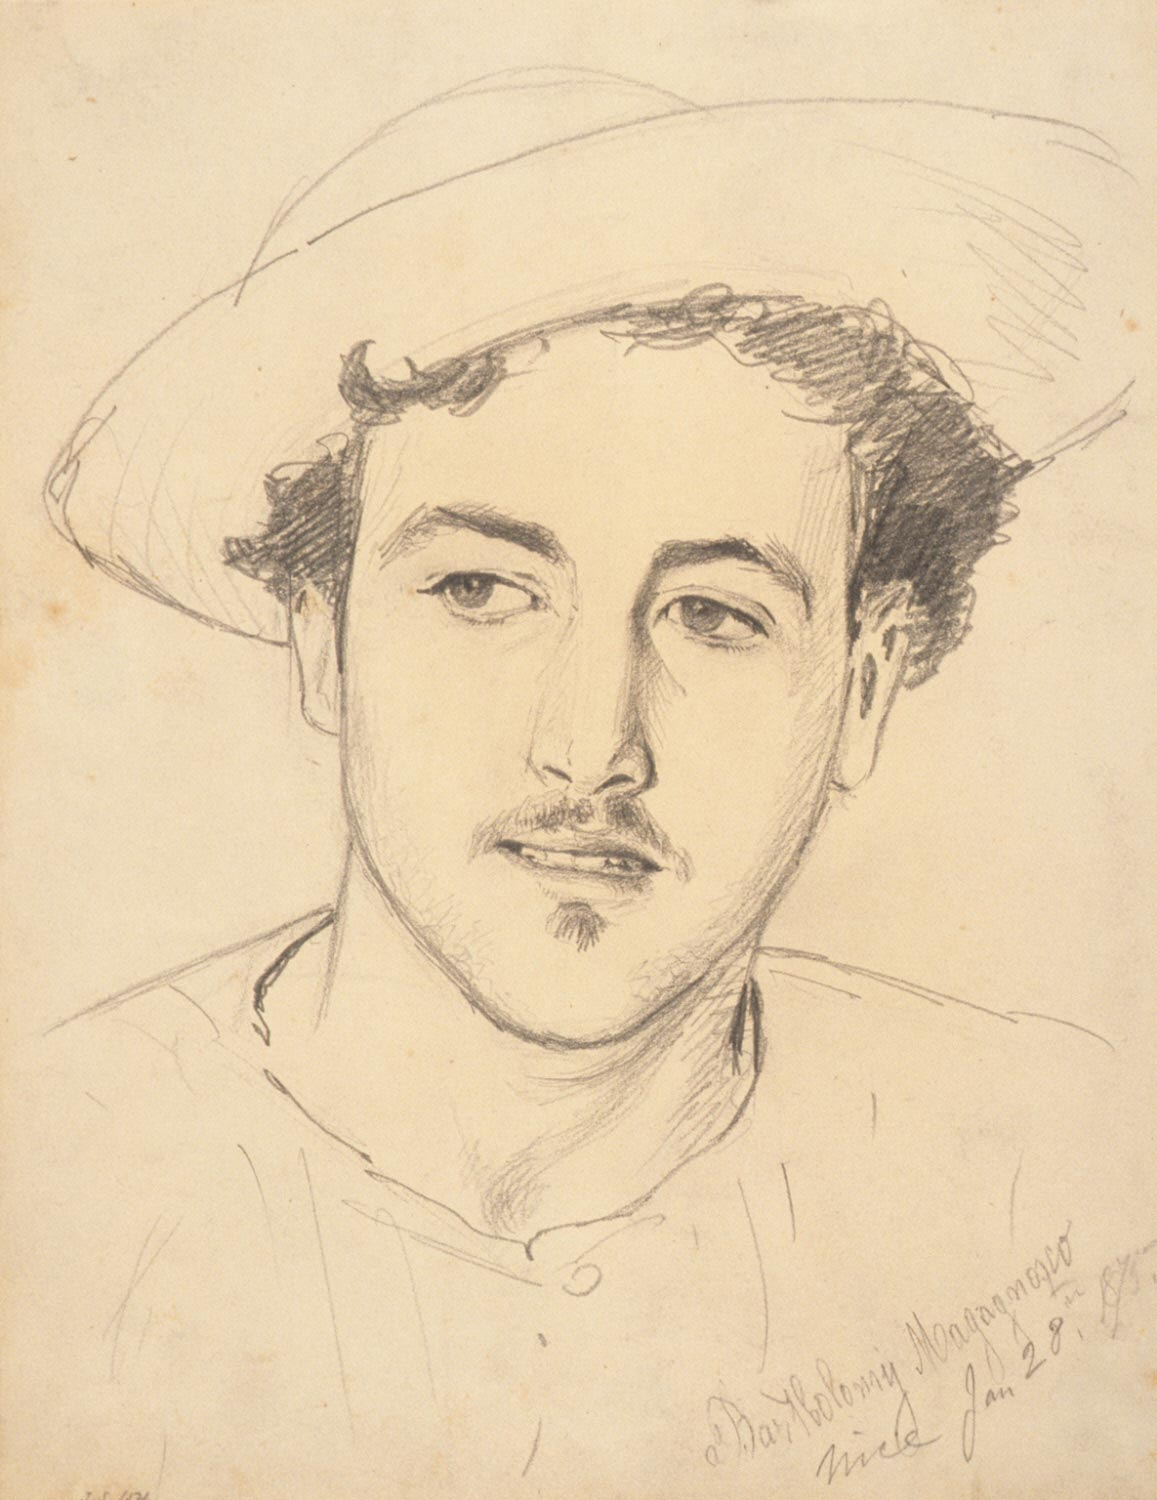 Bartholomy Magagnosco (recto); Graphite sketch of unidentified subject matter and charcoal transfer (verso)